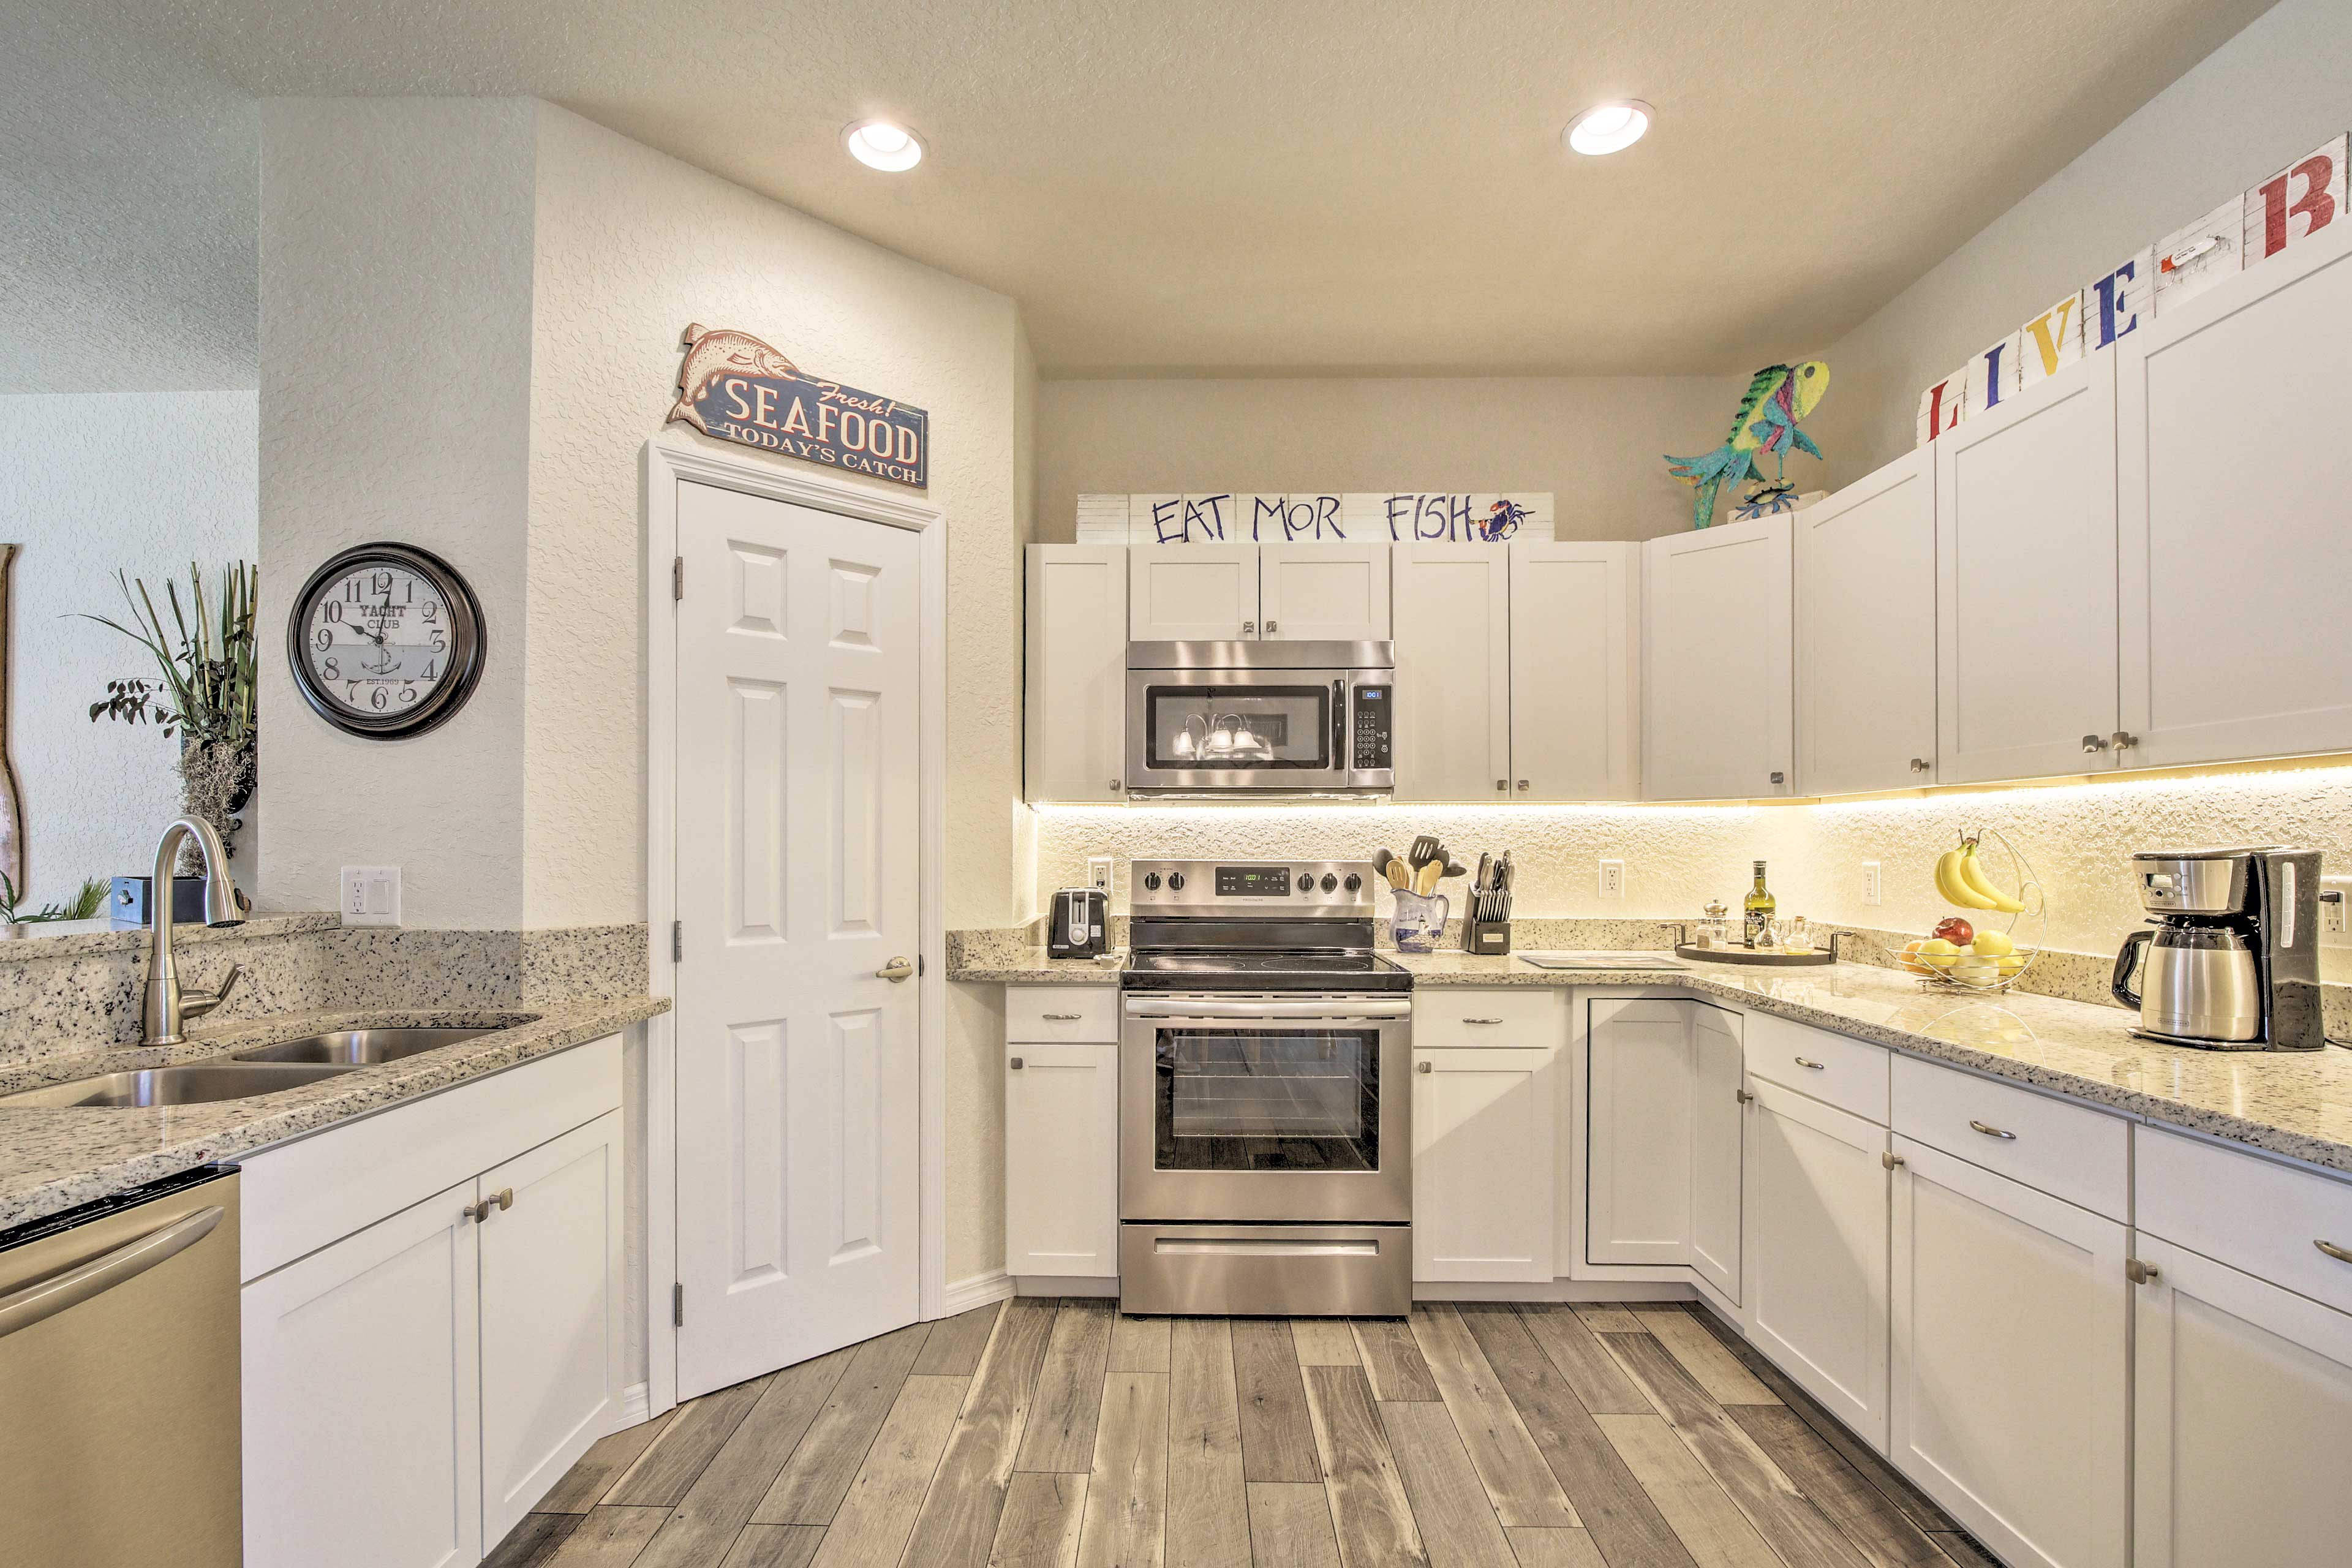 Stainless steel appliances are featured in the kitchen.